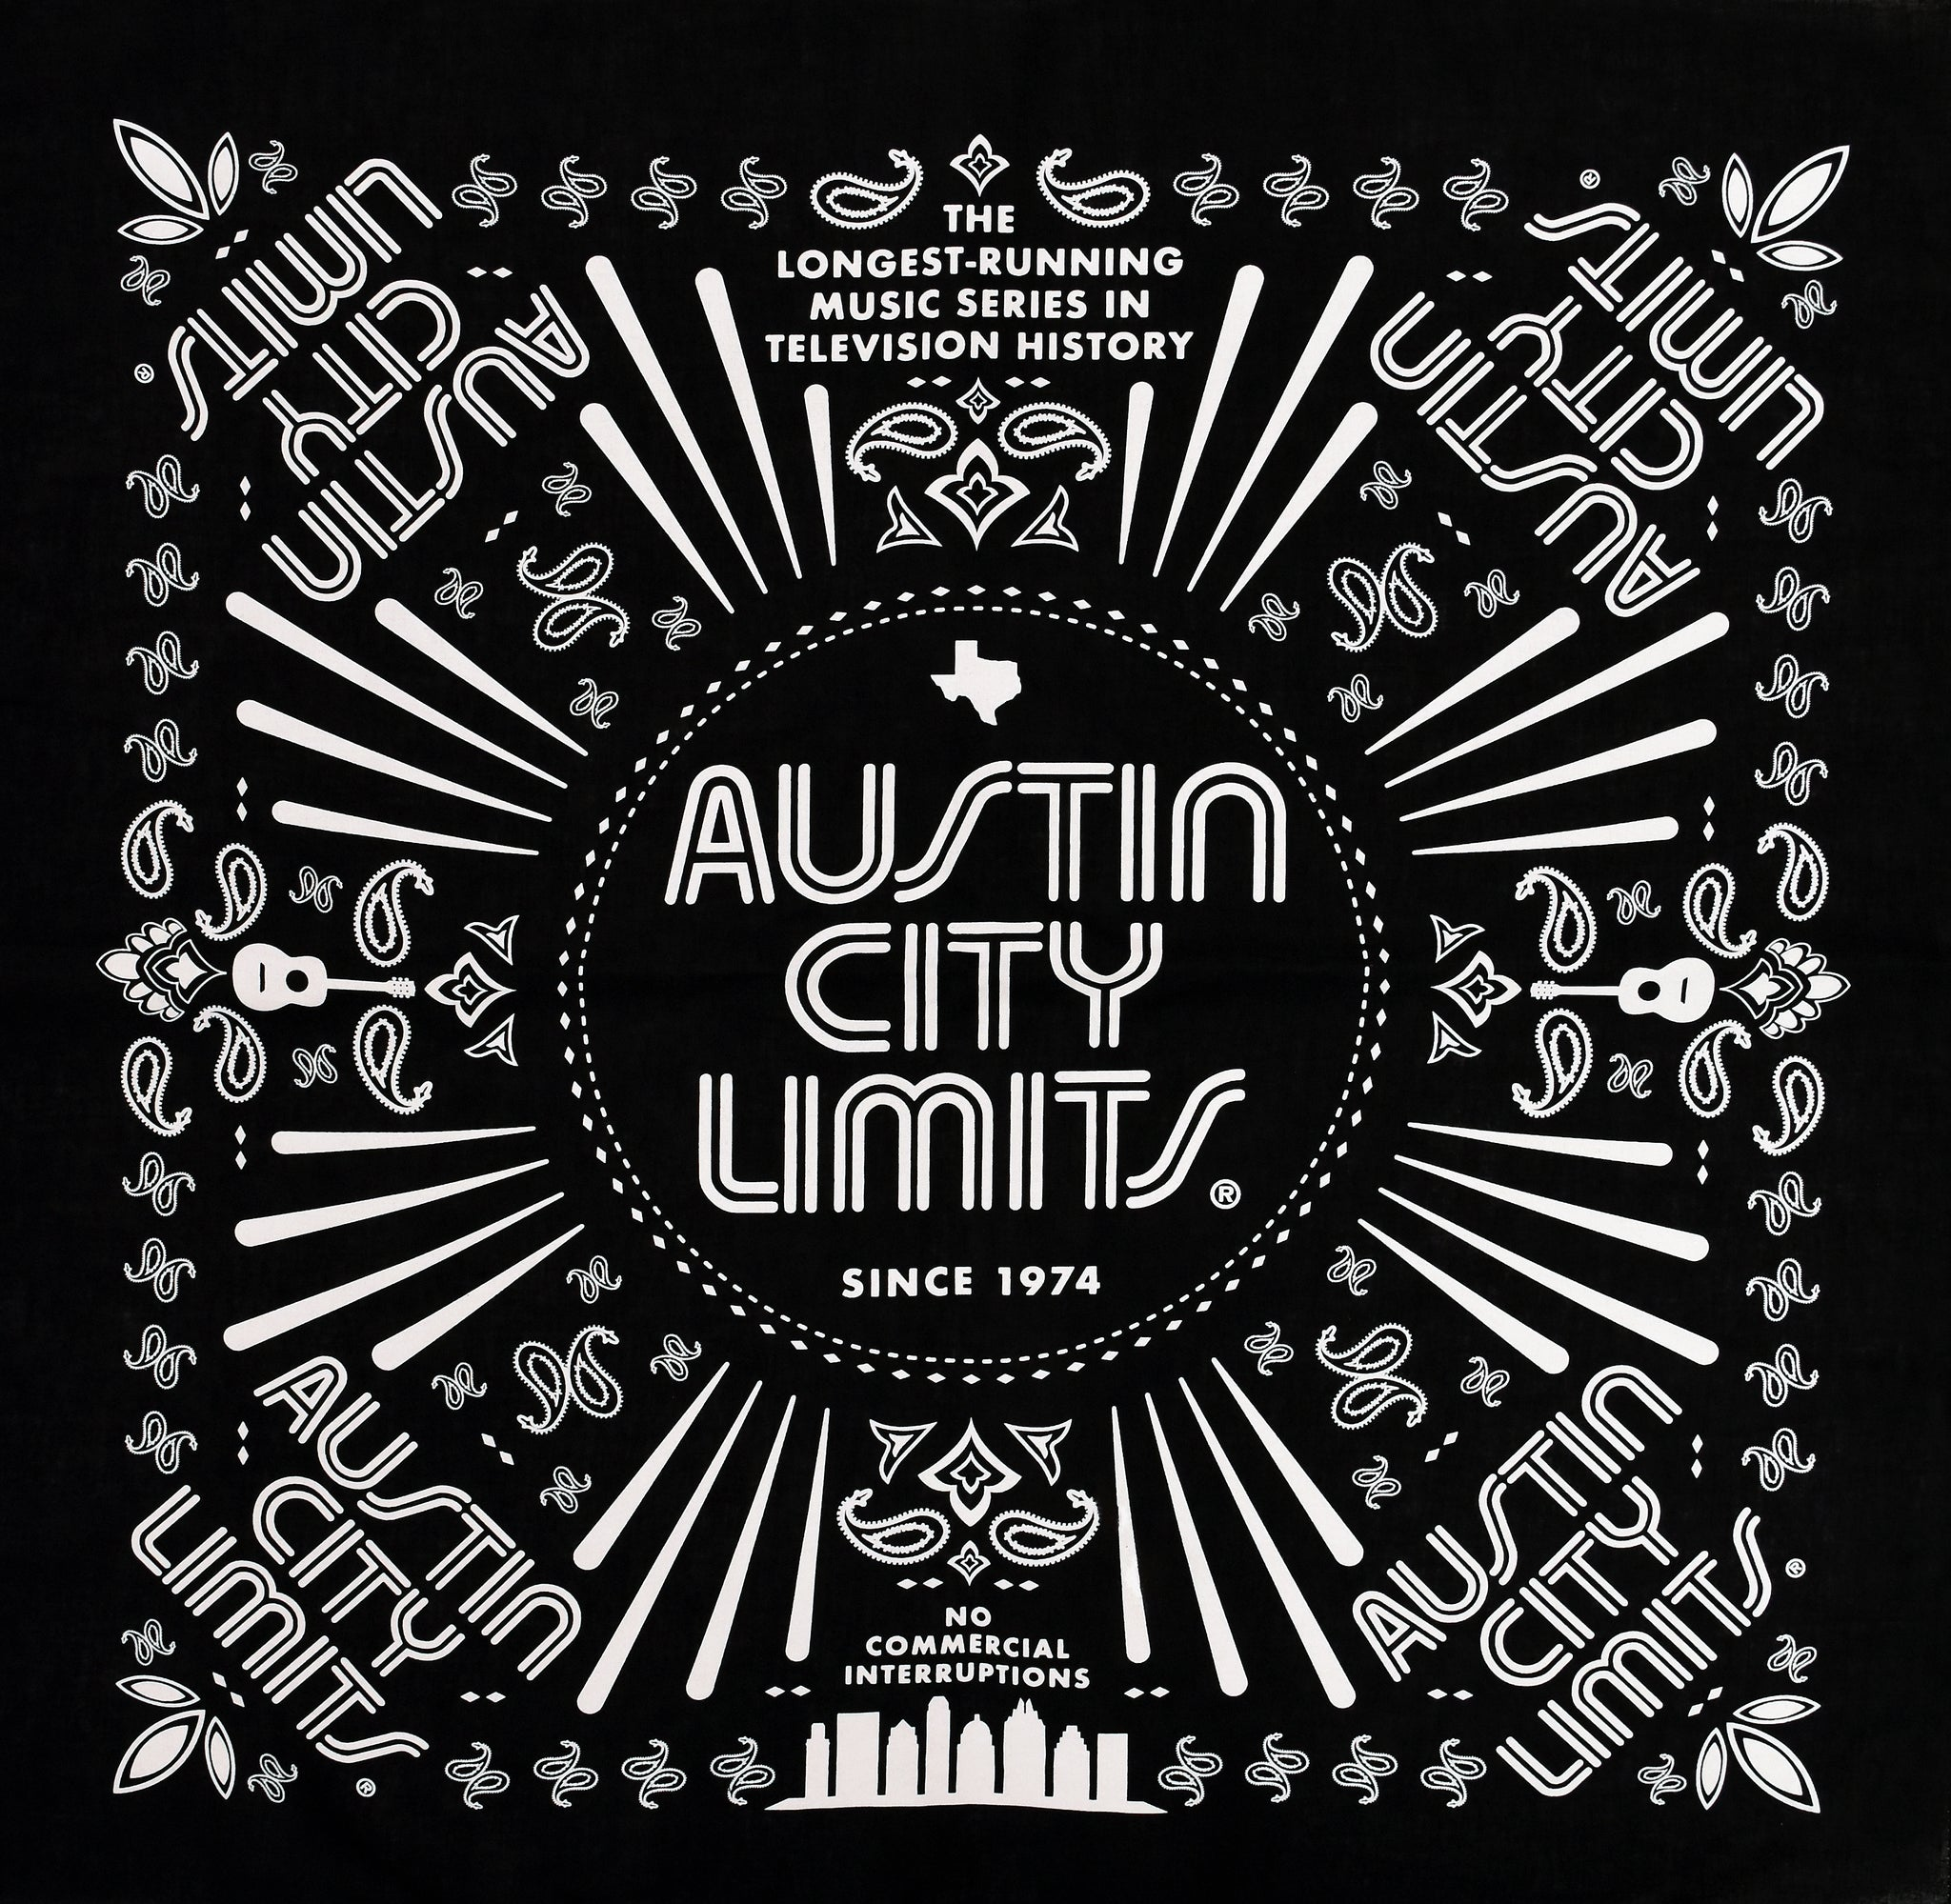 Austin City Limits Black Paisley Bandana